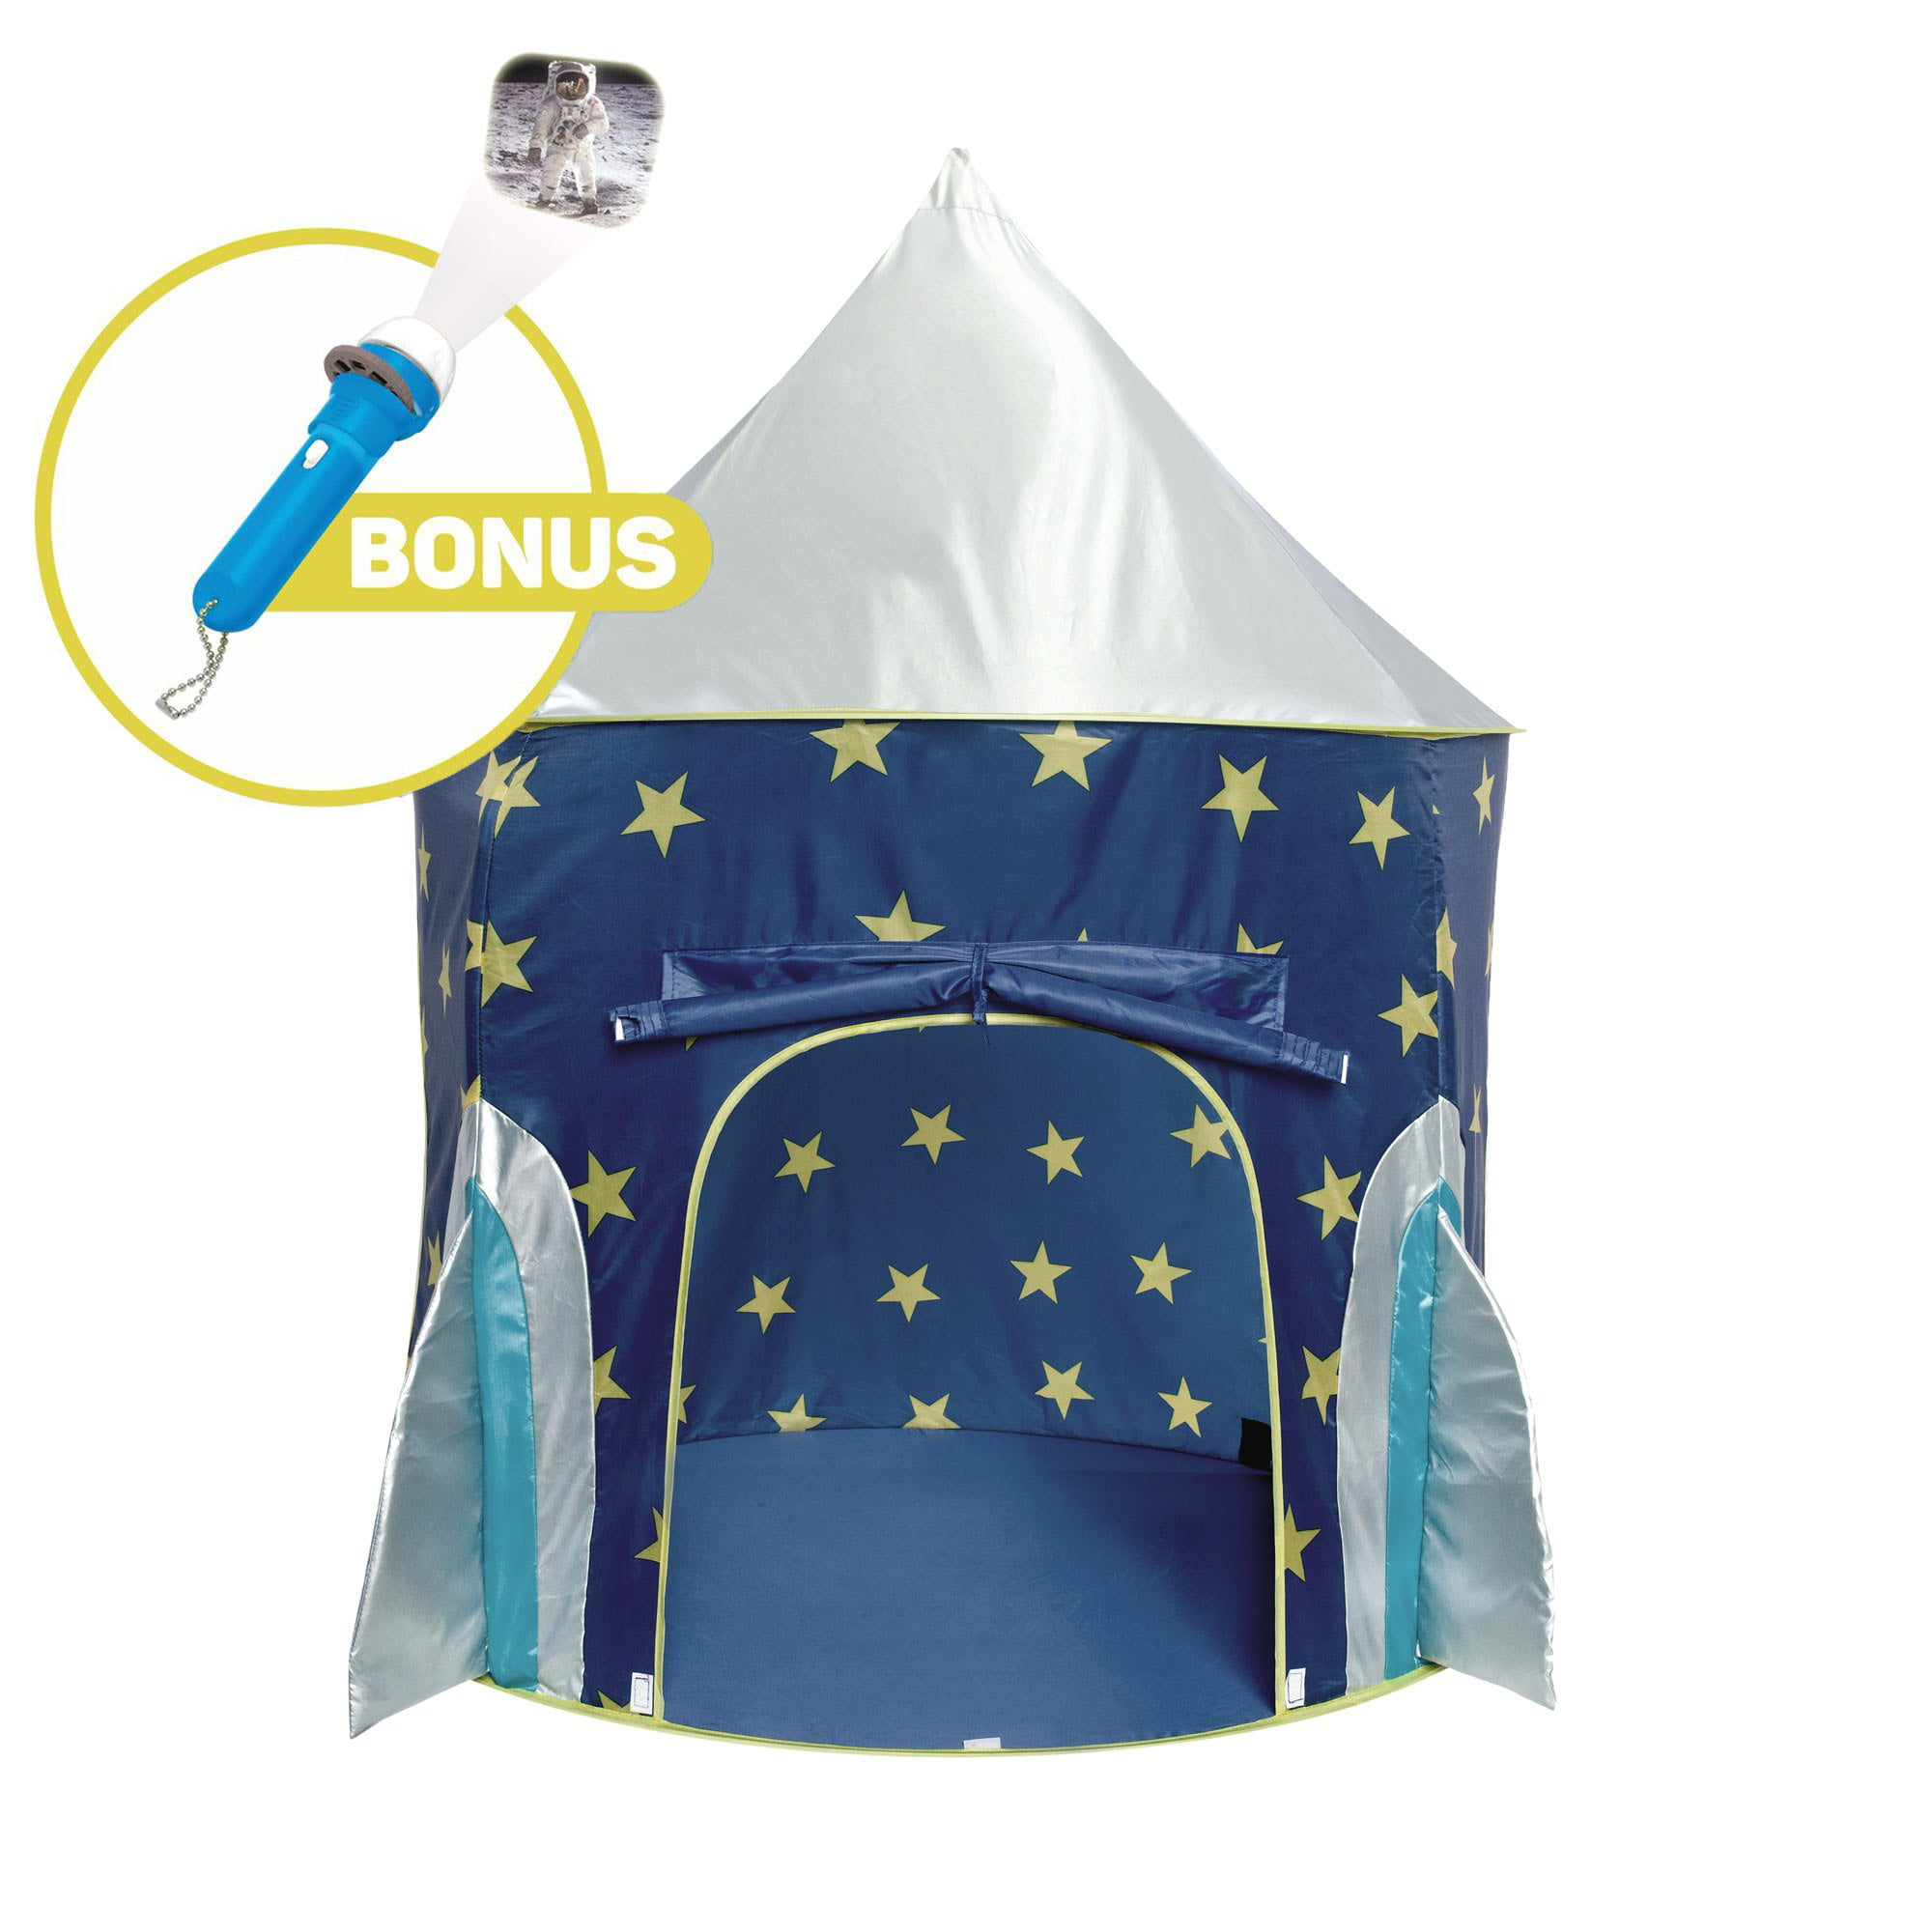 Rocket Ship Play Tent Spaceship Playhouse with Bonus Space Torch Projector Toy by USA Toyz